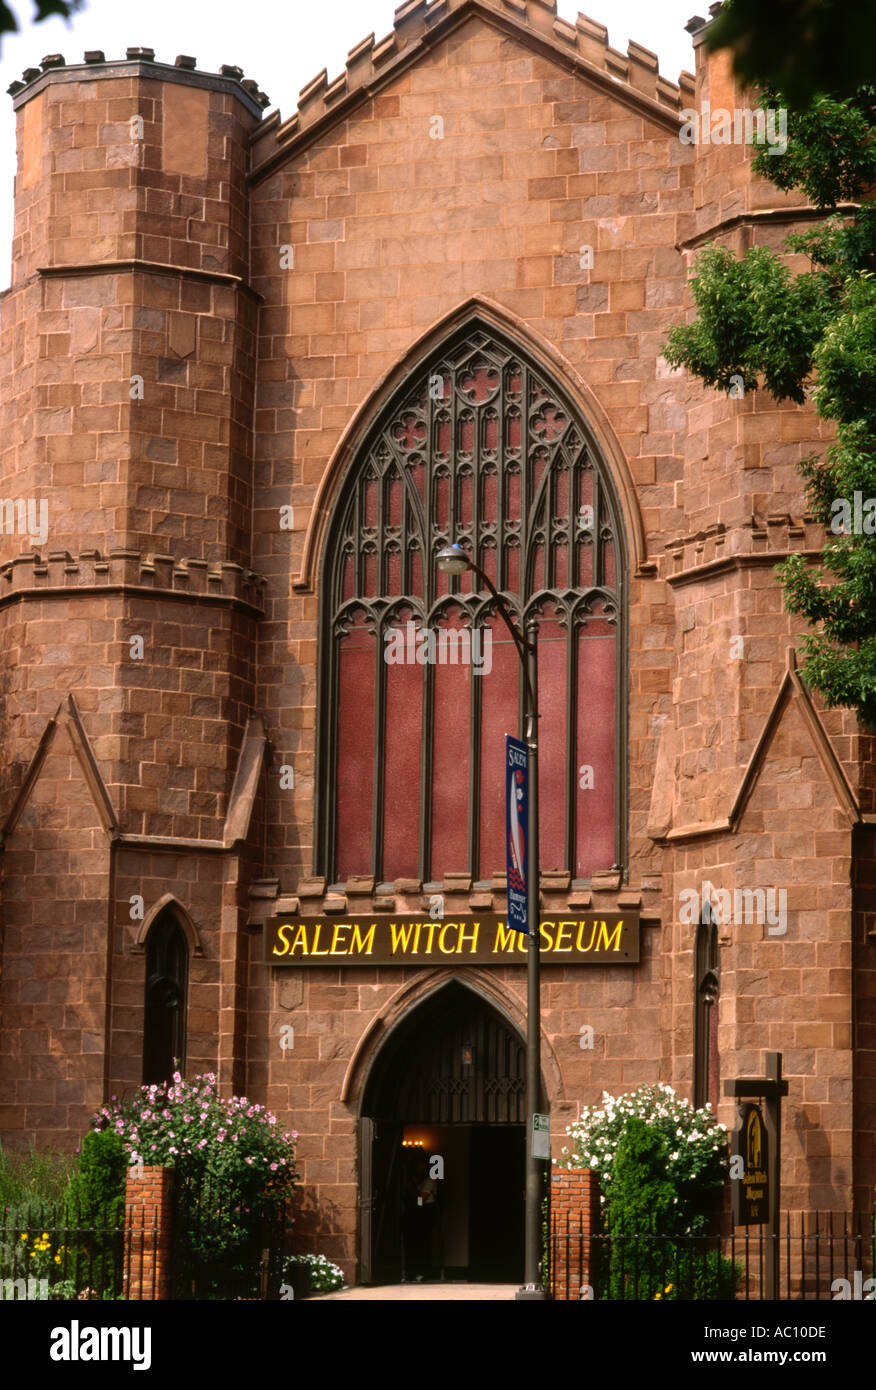 USA Salem Witch museum - Stock Image